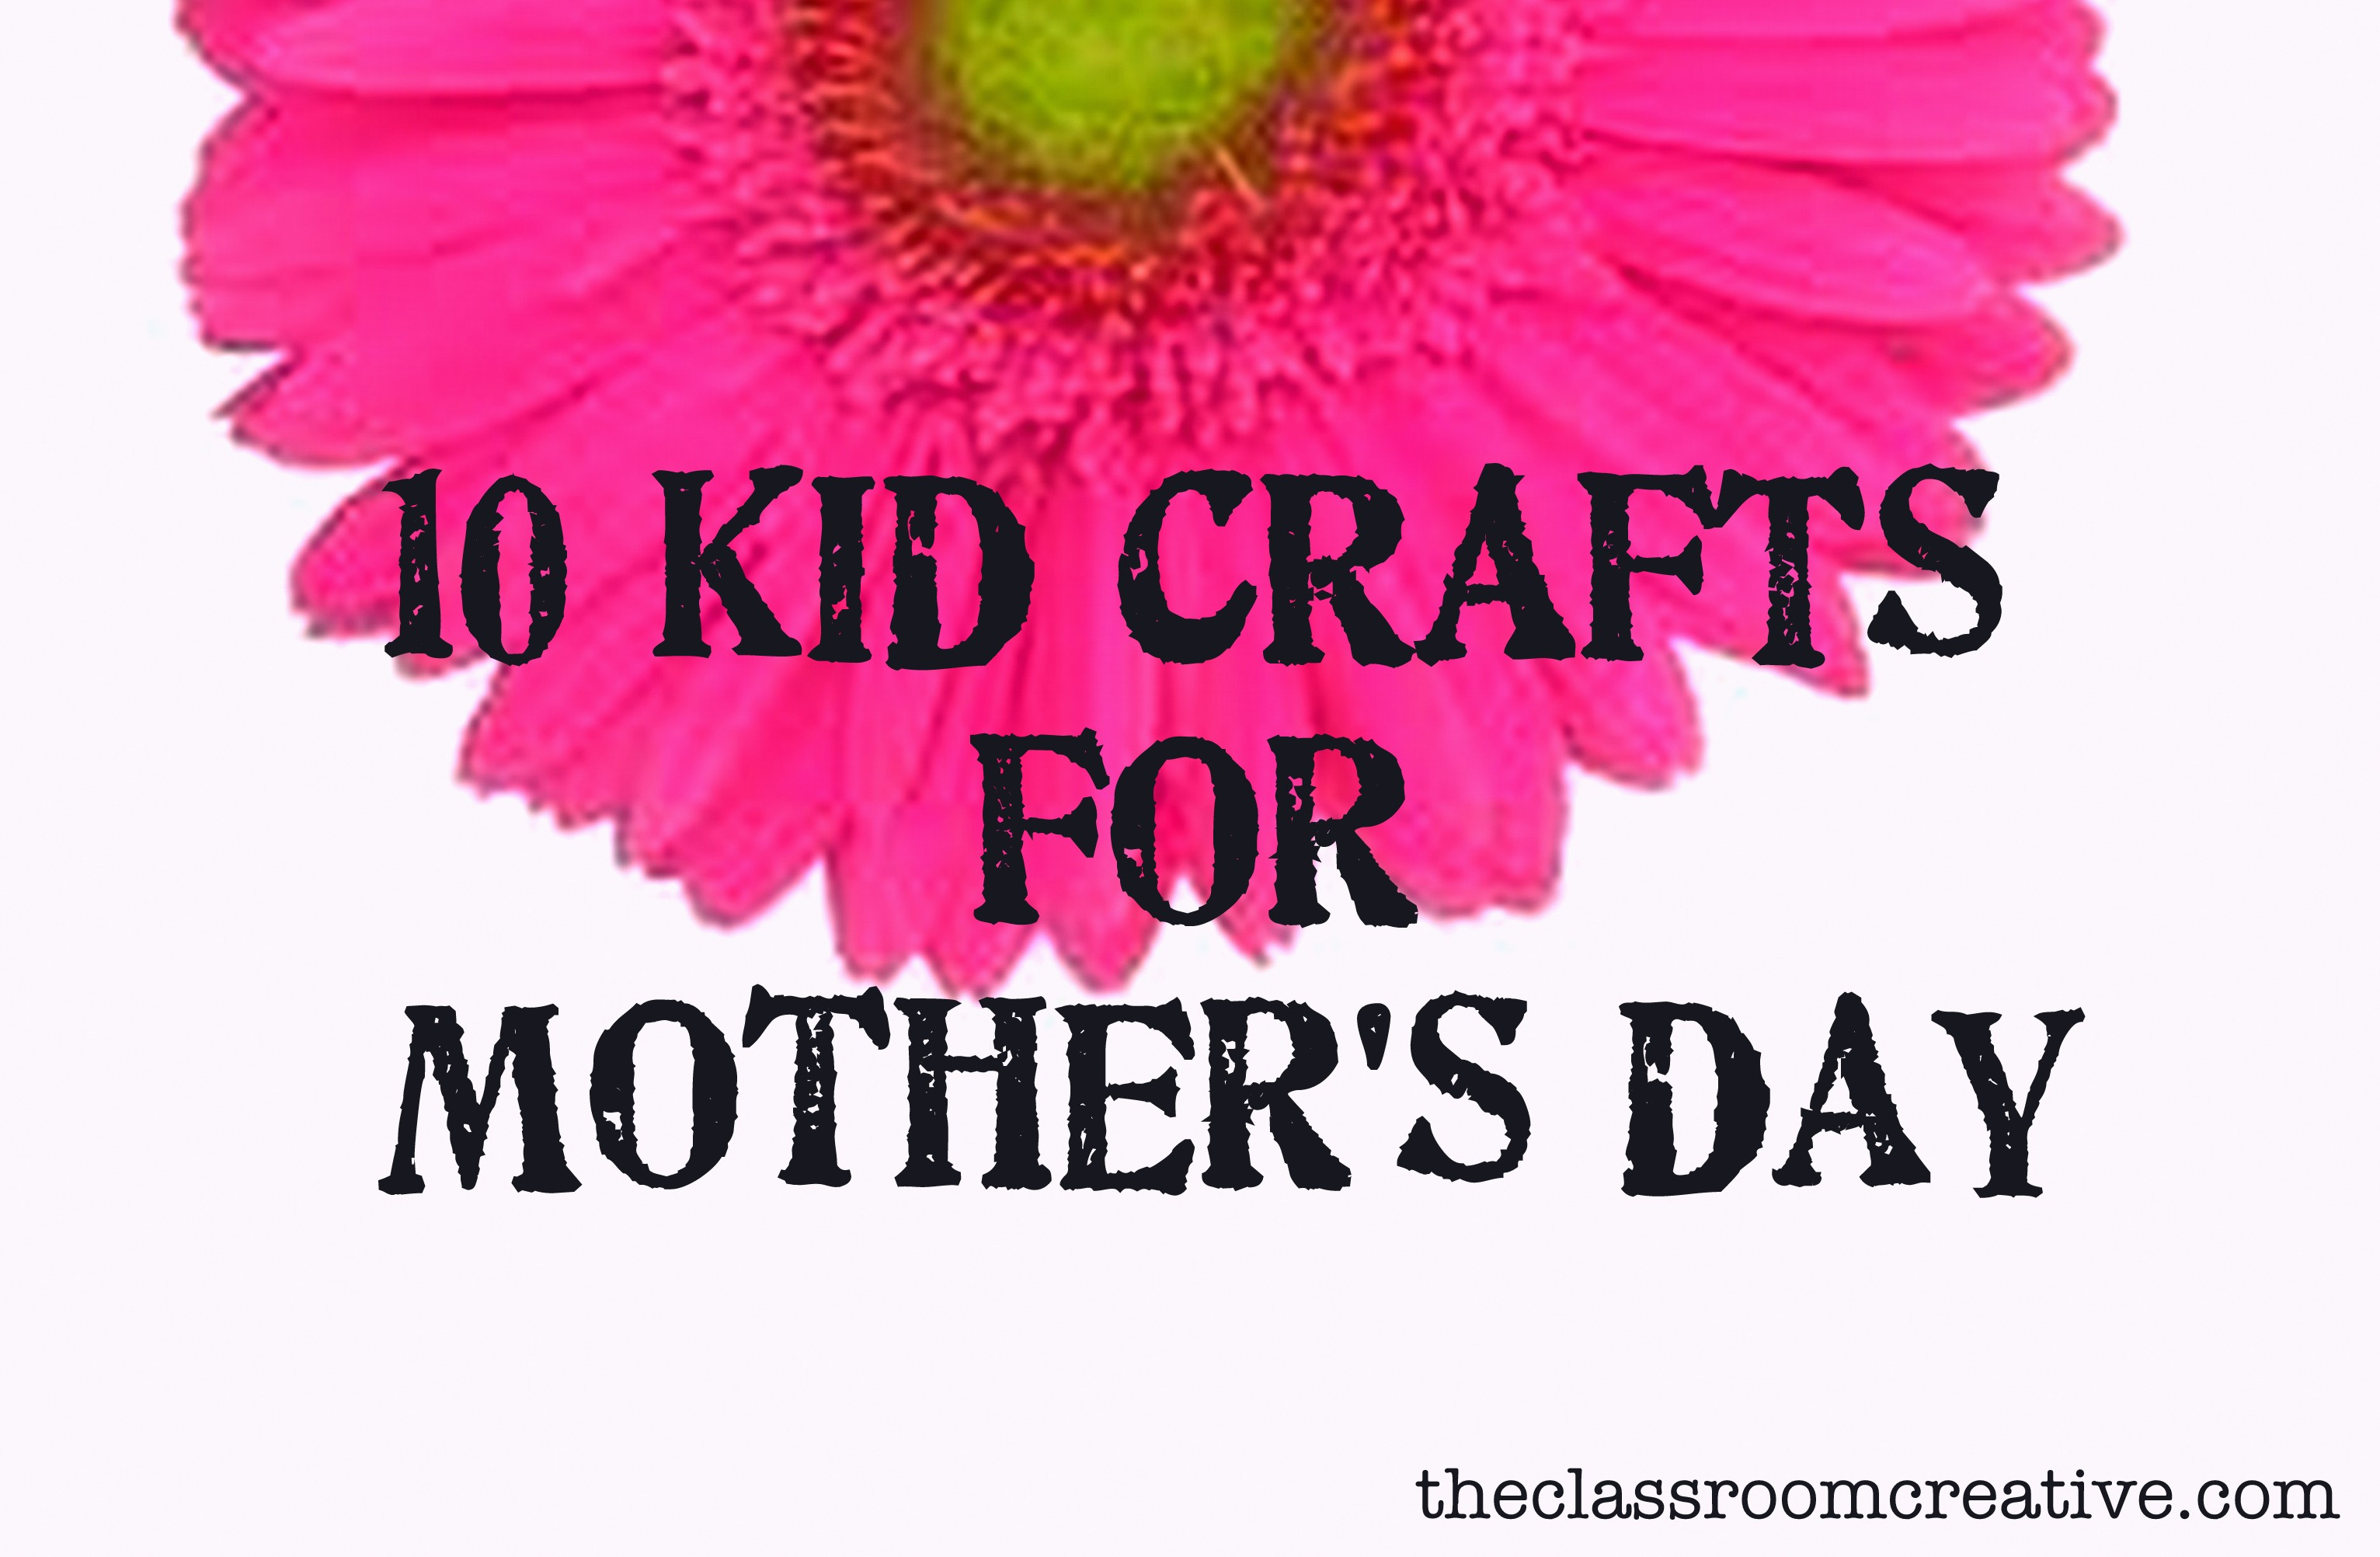 10 Kid Crafts For Mothers Day